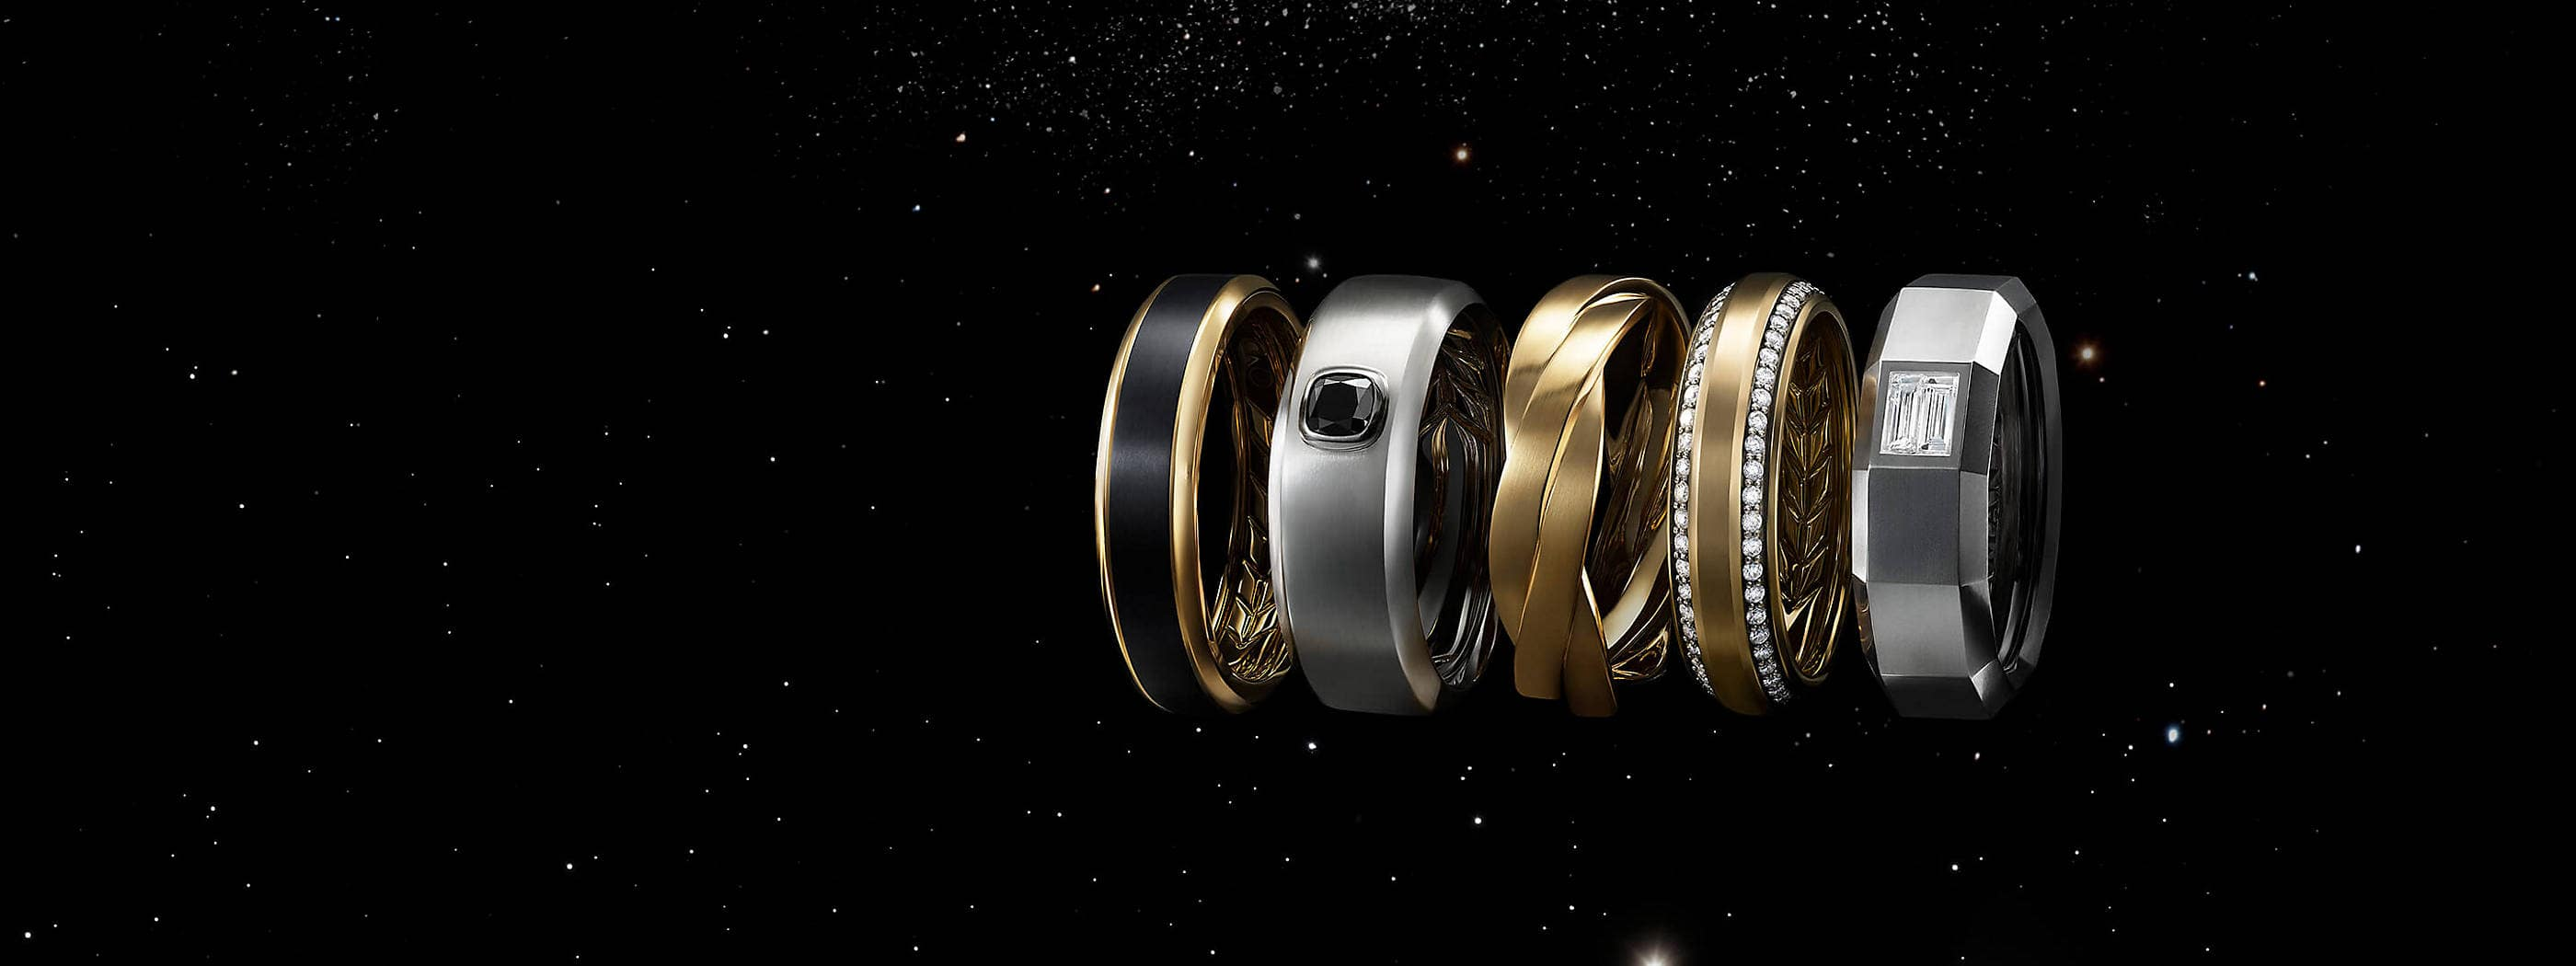 A color photo shows a horizontal stack of five David Yurman men's bands floating in front of a starry night sky. Three of the men's rings are crafted from 18K yellow gold with or without pavé white diamonds or black titanium. Two of the rings are crafted from 18K white gold with or without black or white diamonds